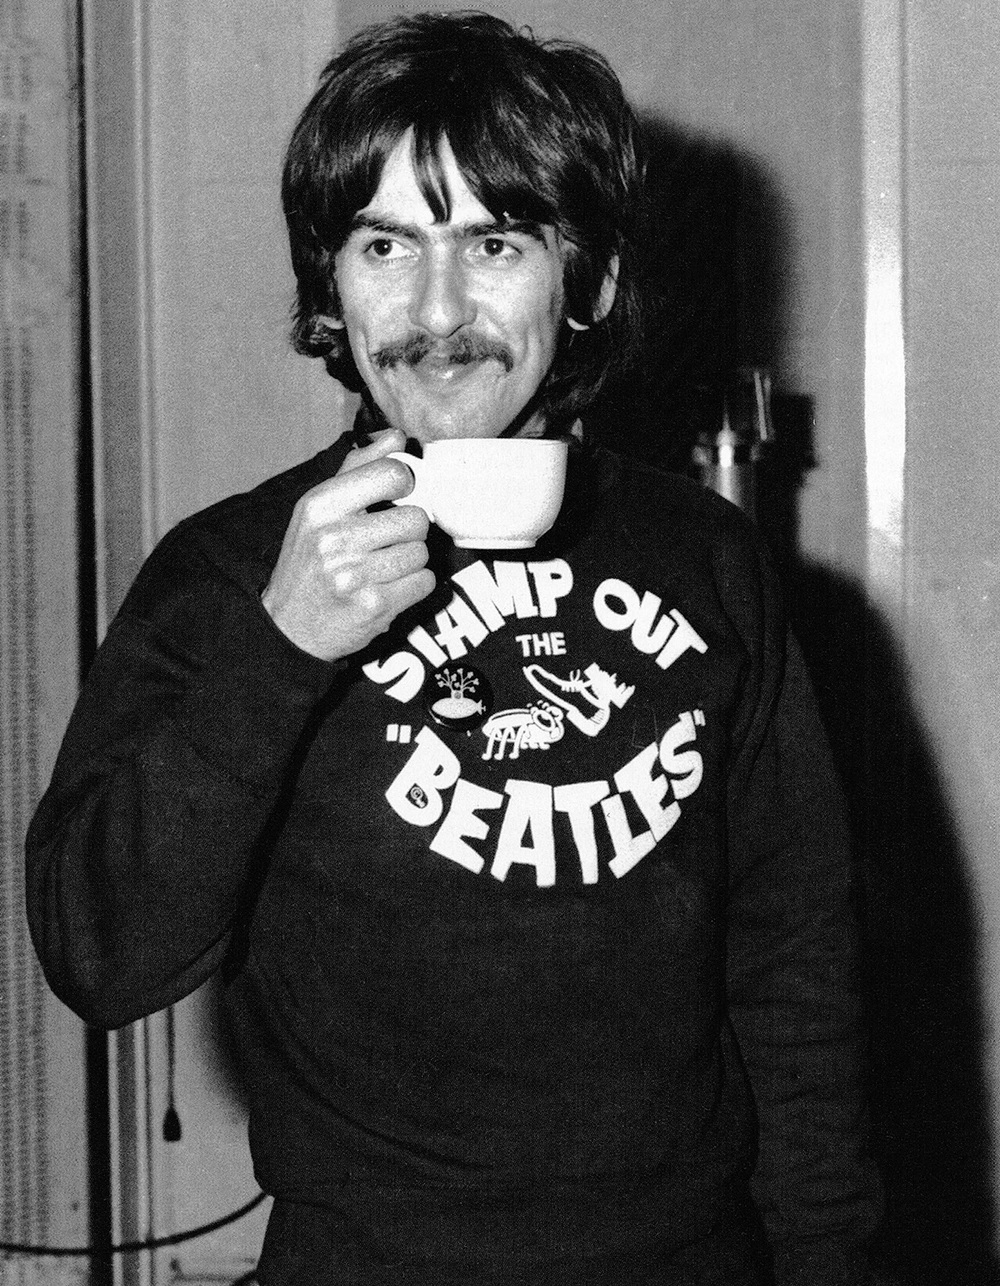 George Harrison wearing a 'Stamp out the Beatles' t-shirt, circa 1967.